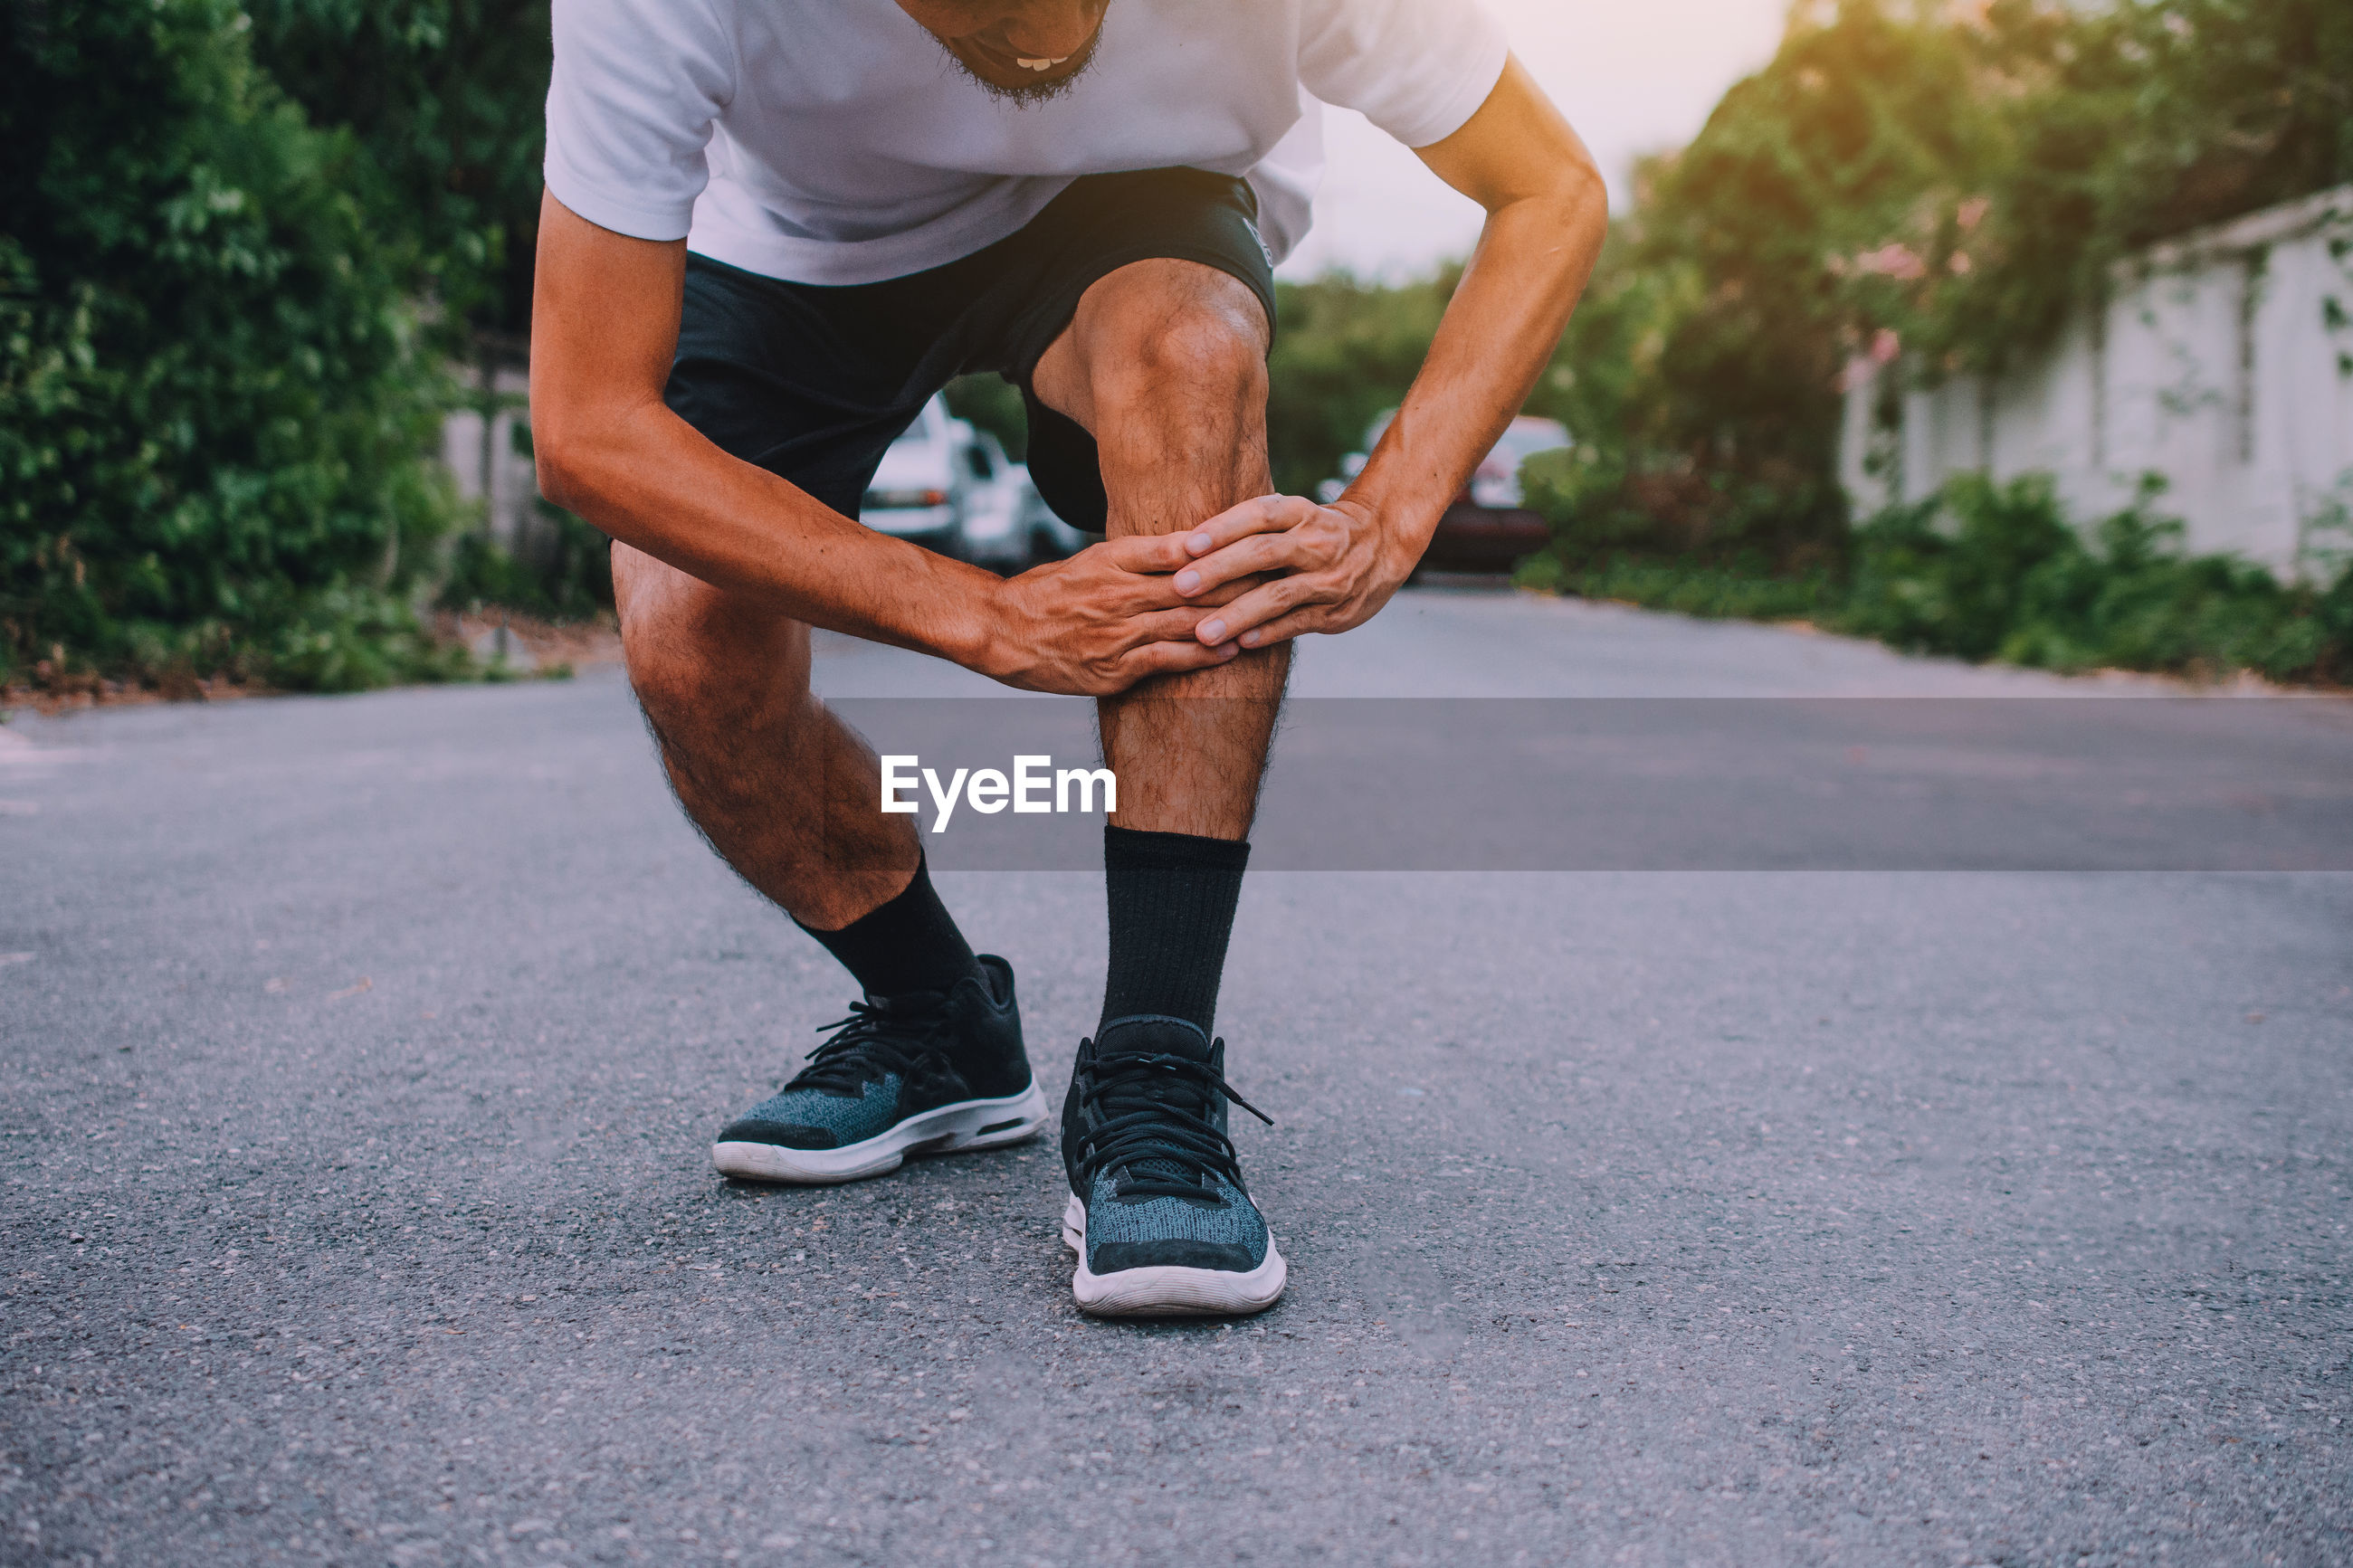 Low section of athlete with knee pain on road